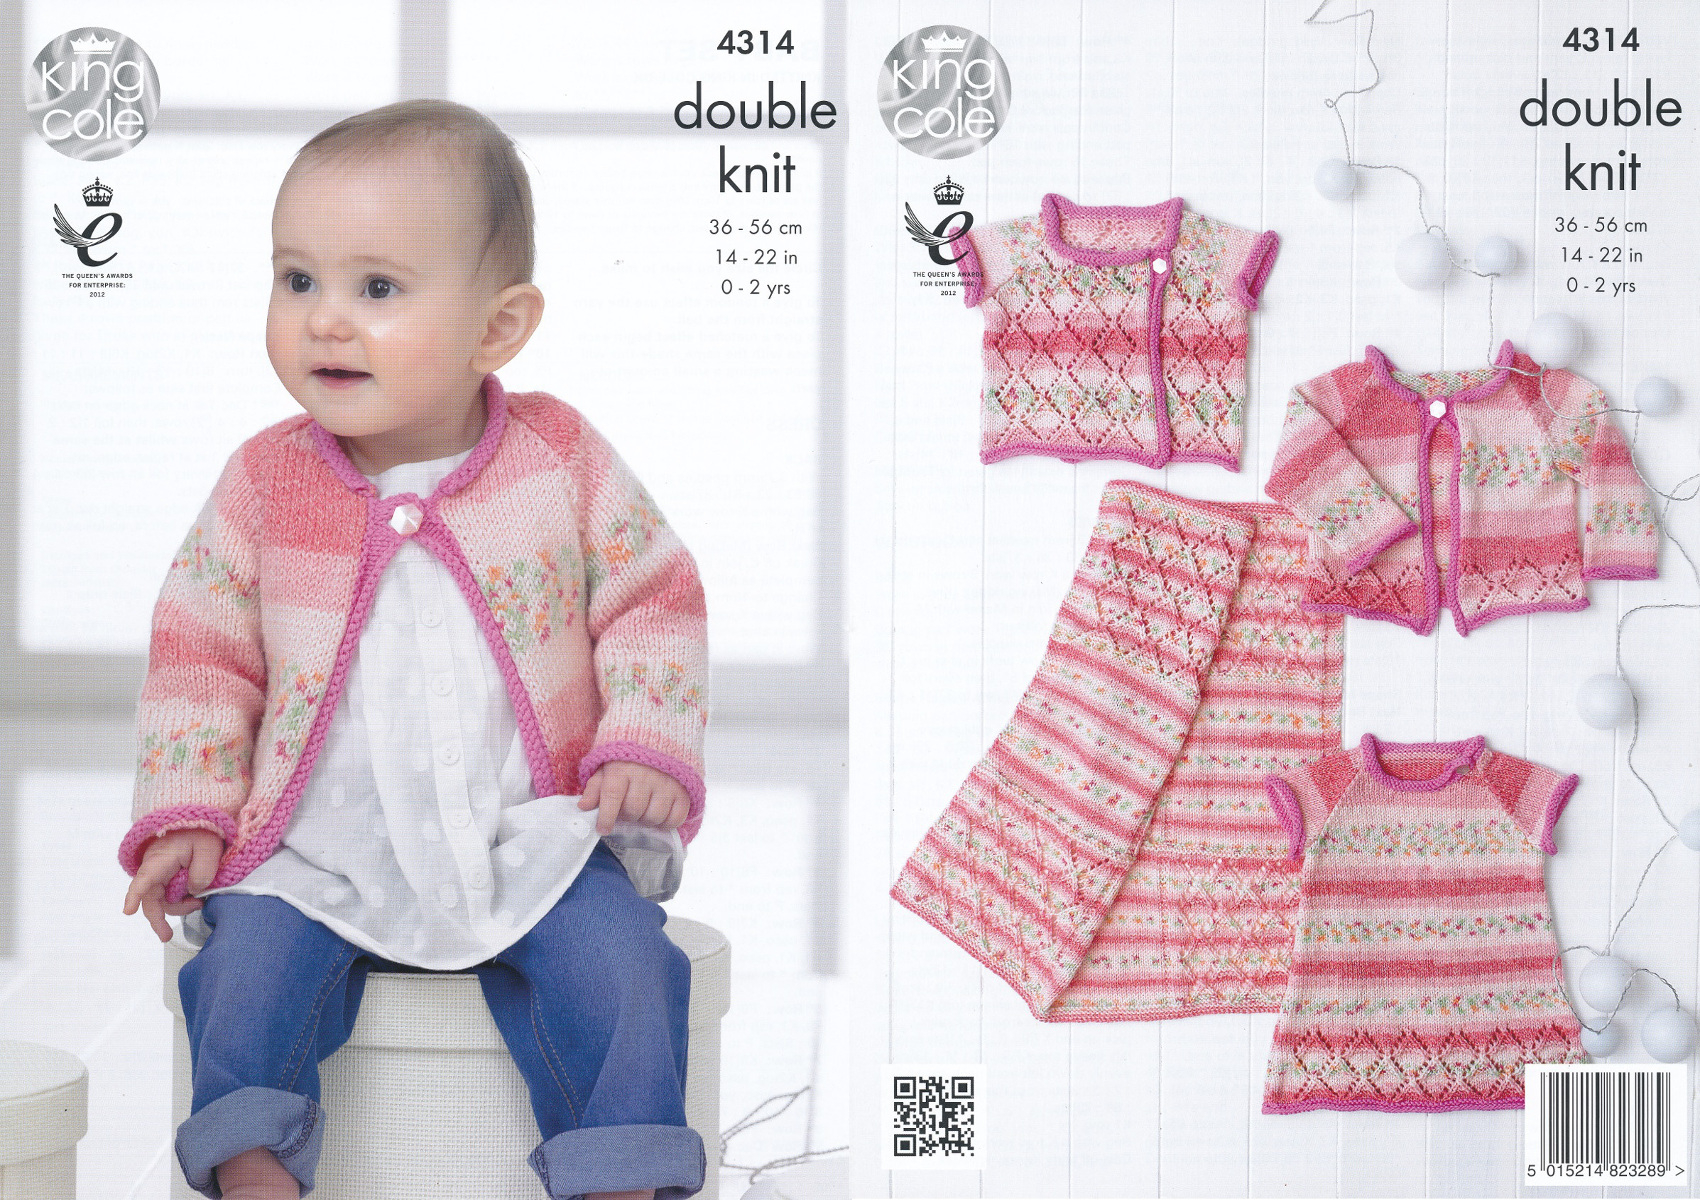 Double Knitting Baby Patterns Details About King Cole Double Knitting Pattern Ba Dress Cardigan Waistcoat Blanket Set 4314